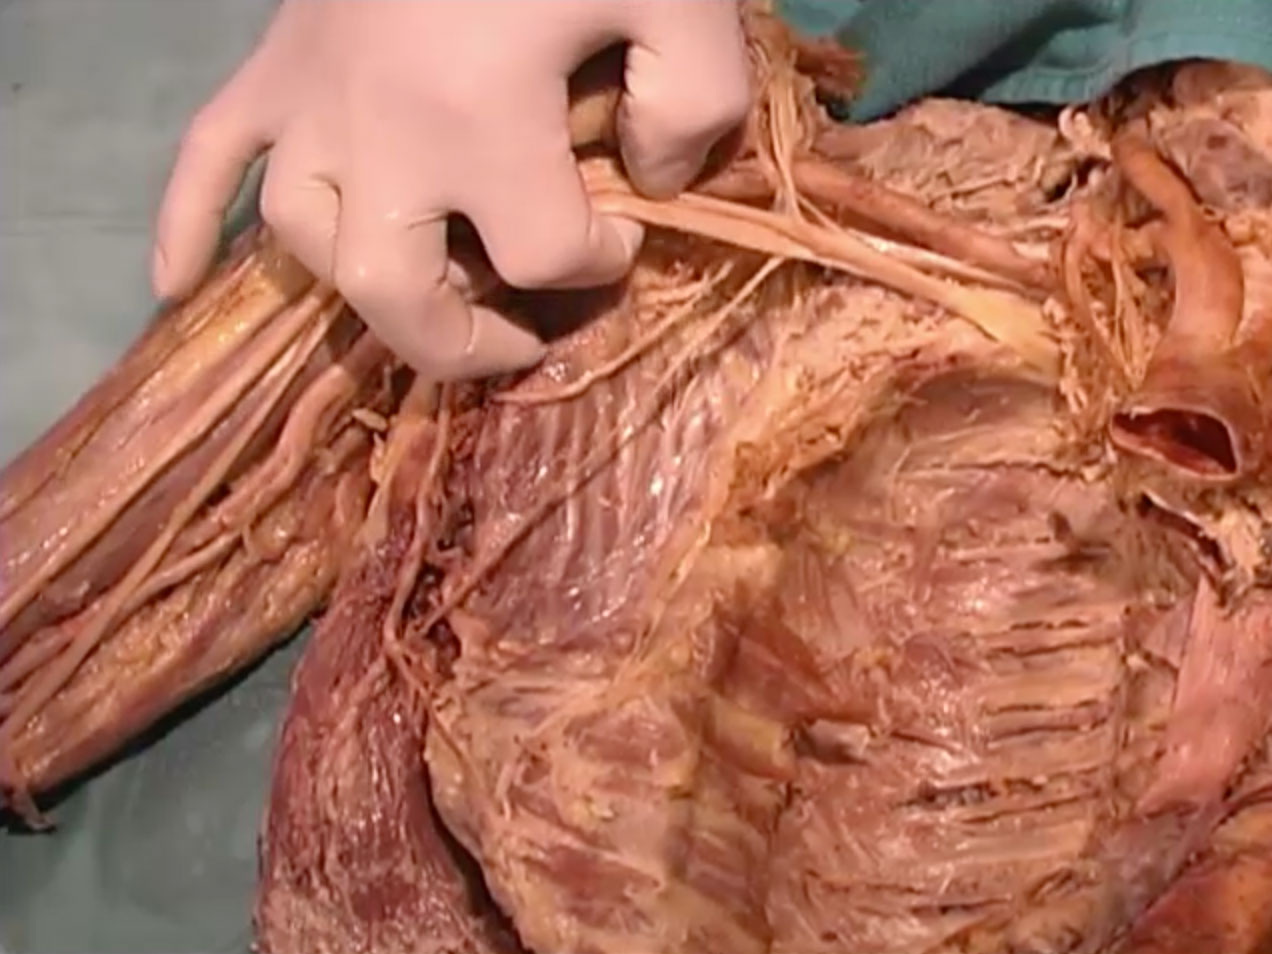 Dissection 17 Cutaneous Veins and Axilla - SMPH Video Library